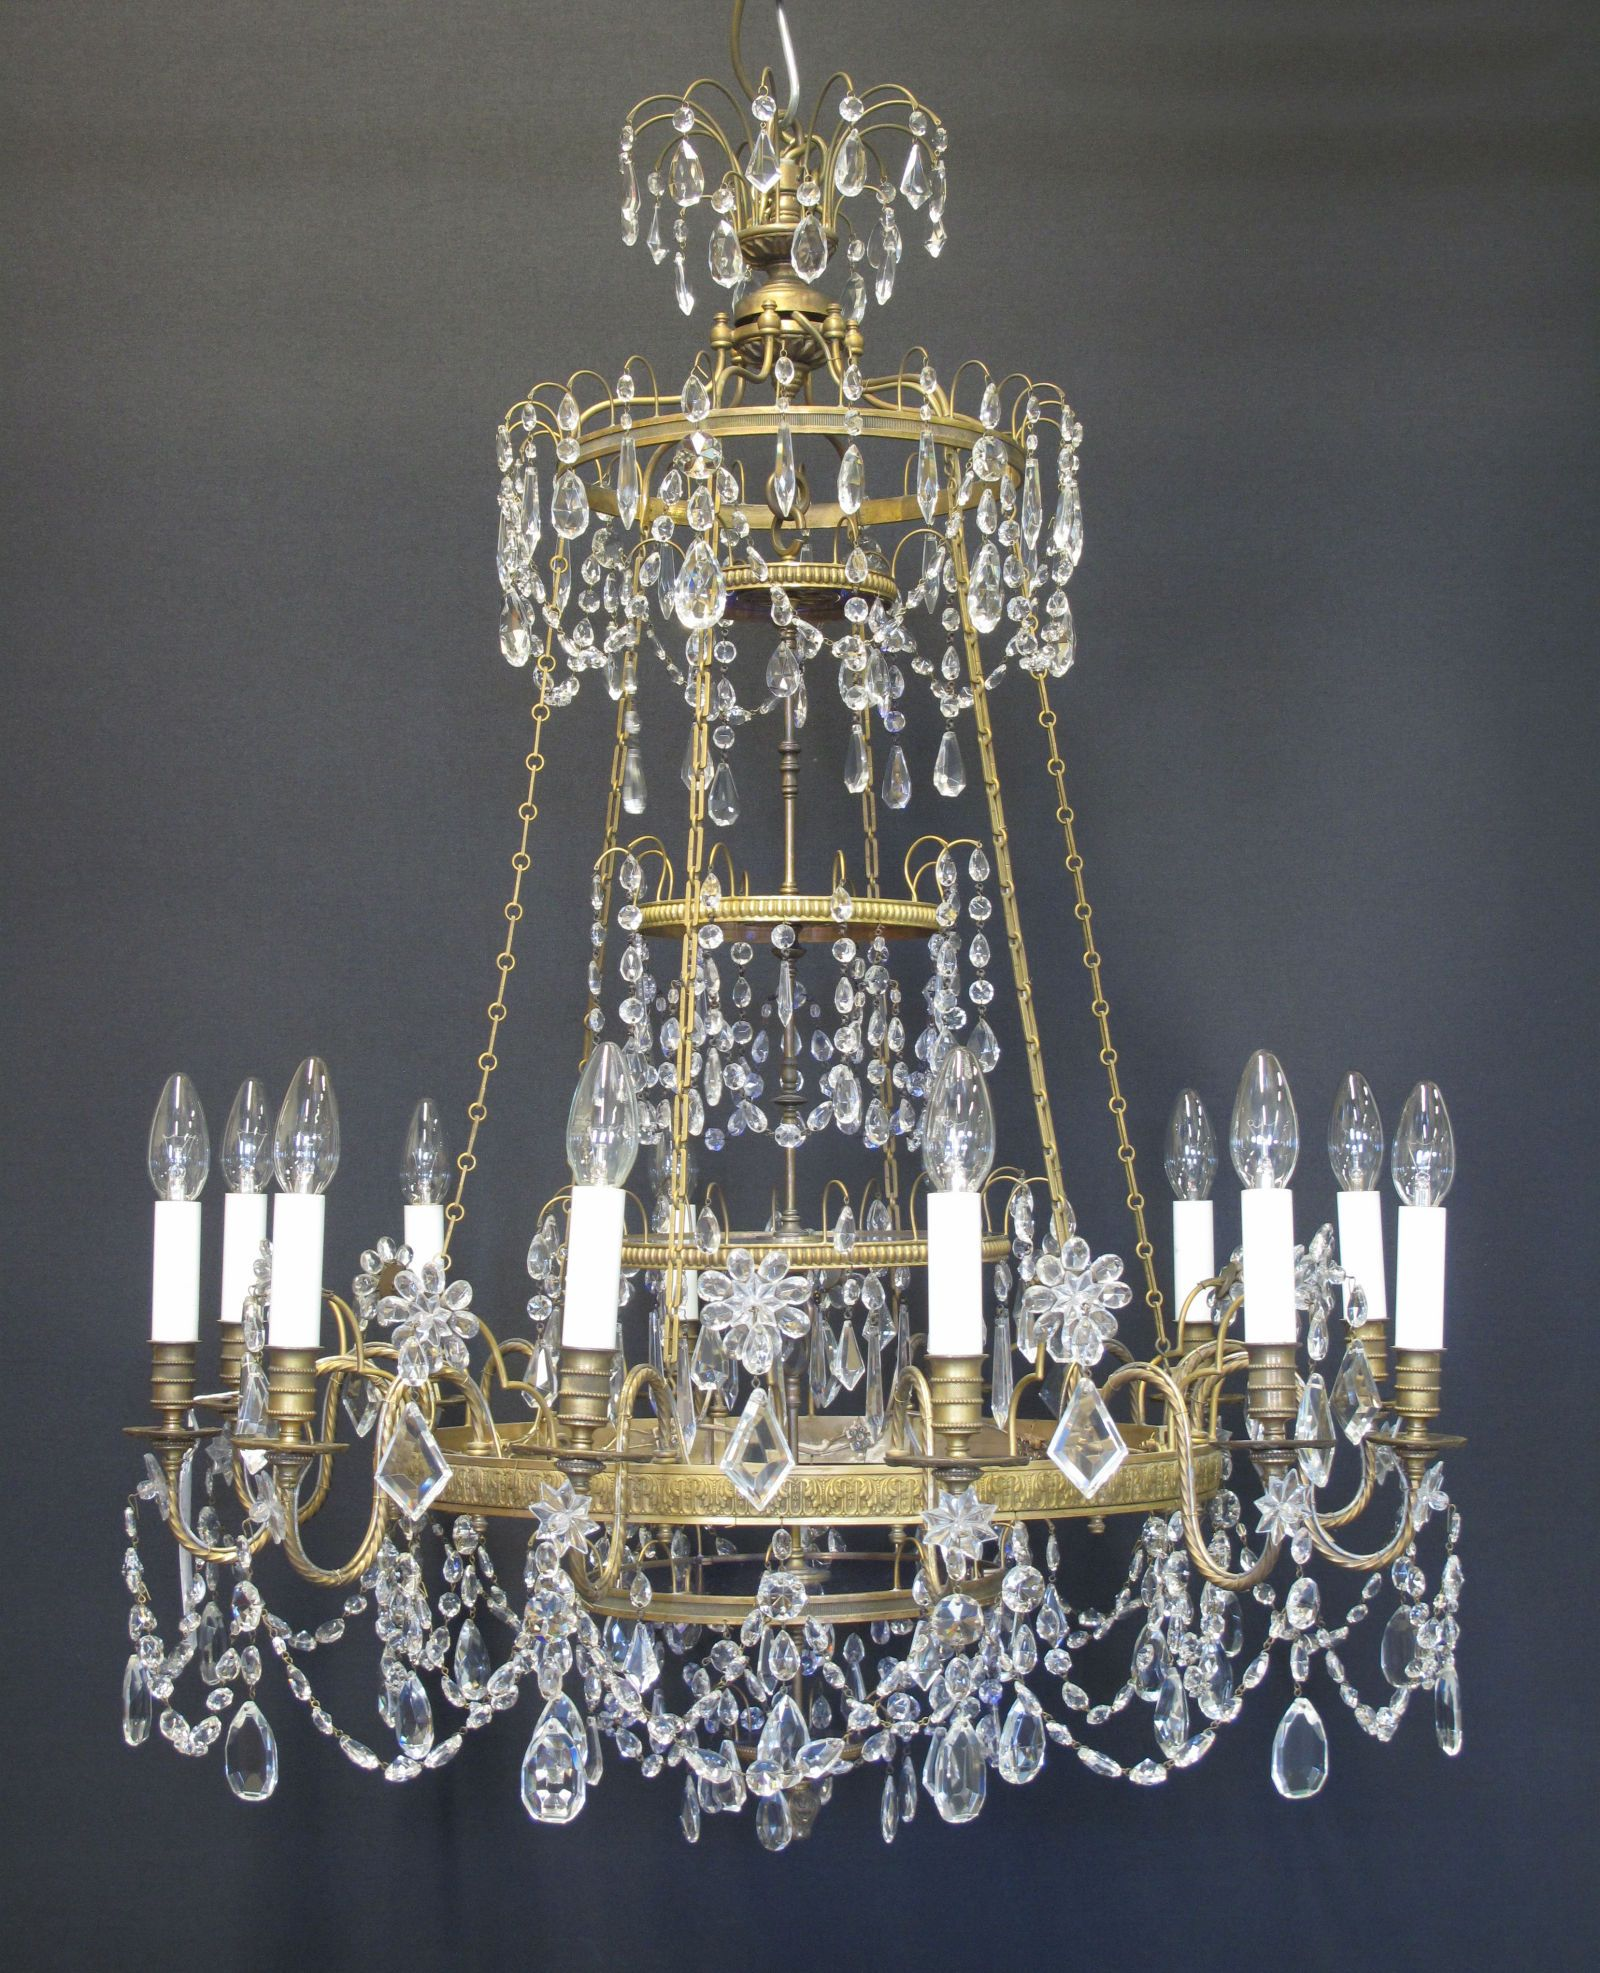 G p cohn antique chandeliers repairs restoration gorgeous g p cohn antique chandeliers repairs restoration aloadofball Image collections